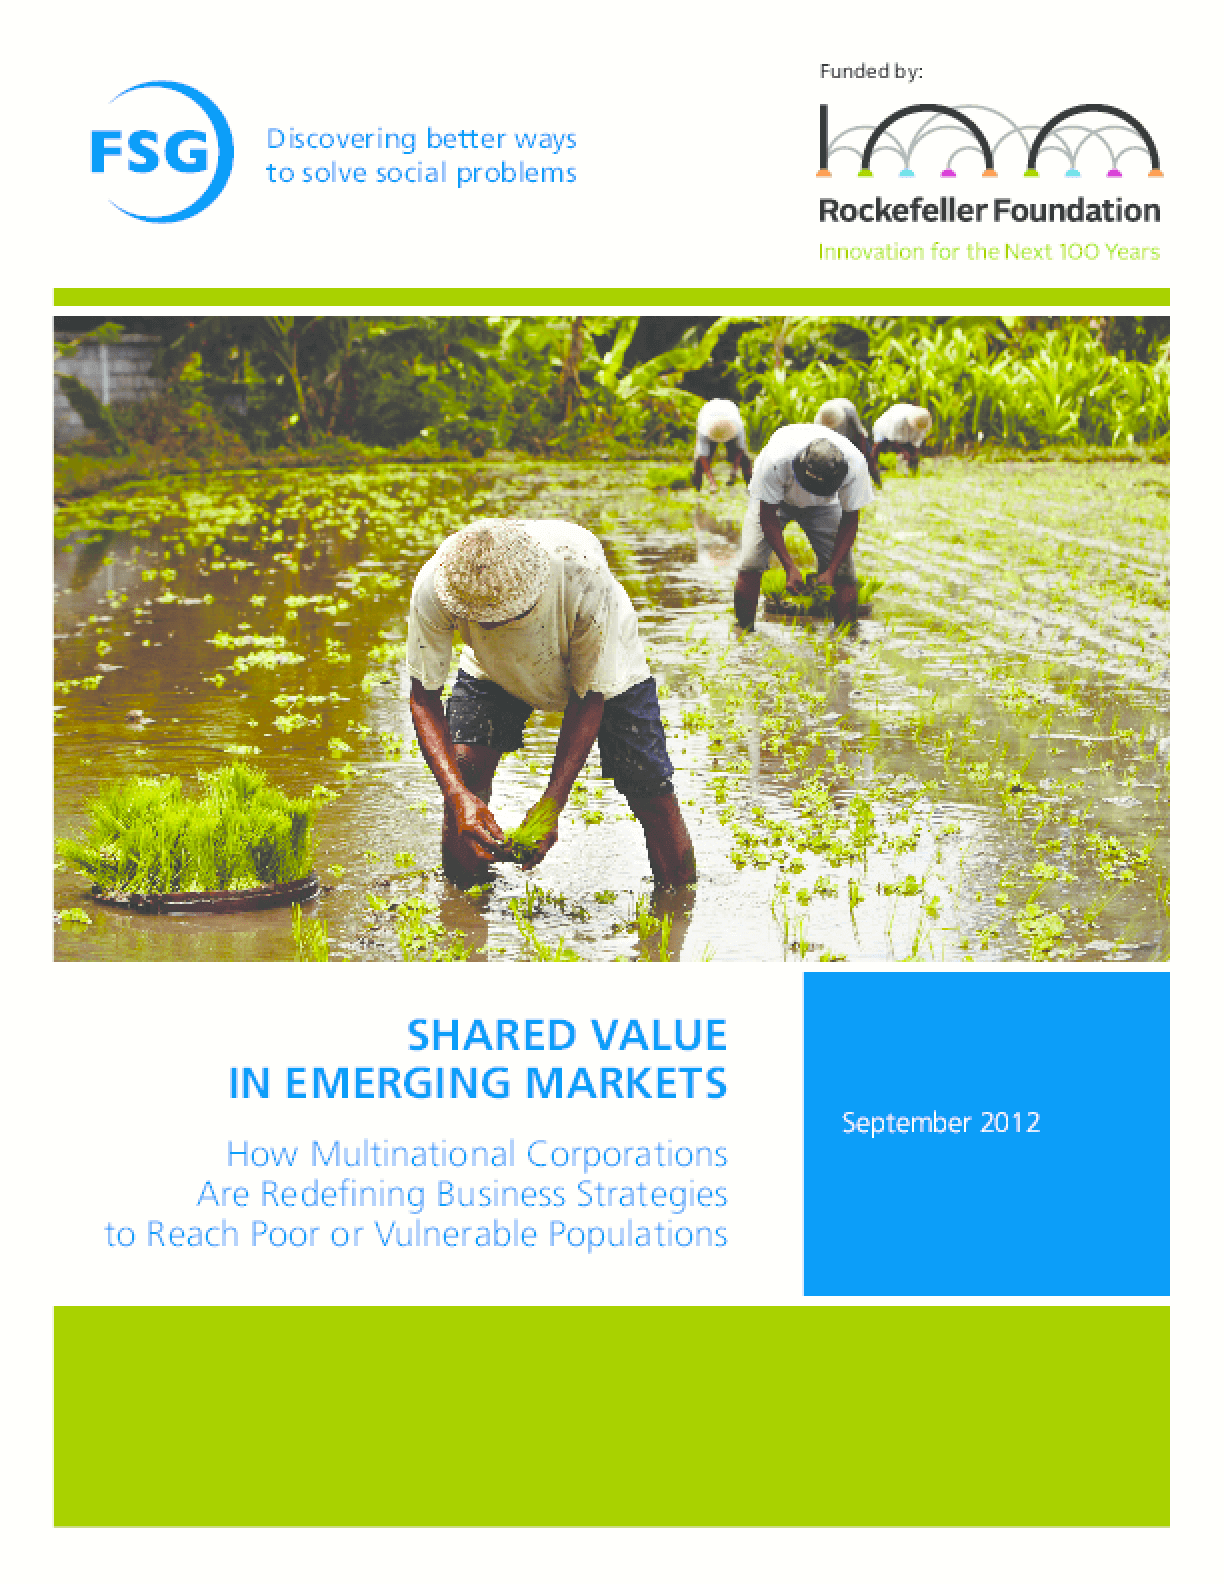 Shared Value in Emerging Markets: How Multinational Corporations Are Redefining Business Strategies to Reach Poor or Vulnerable Populations